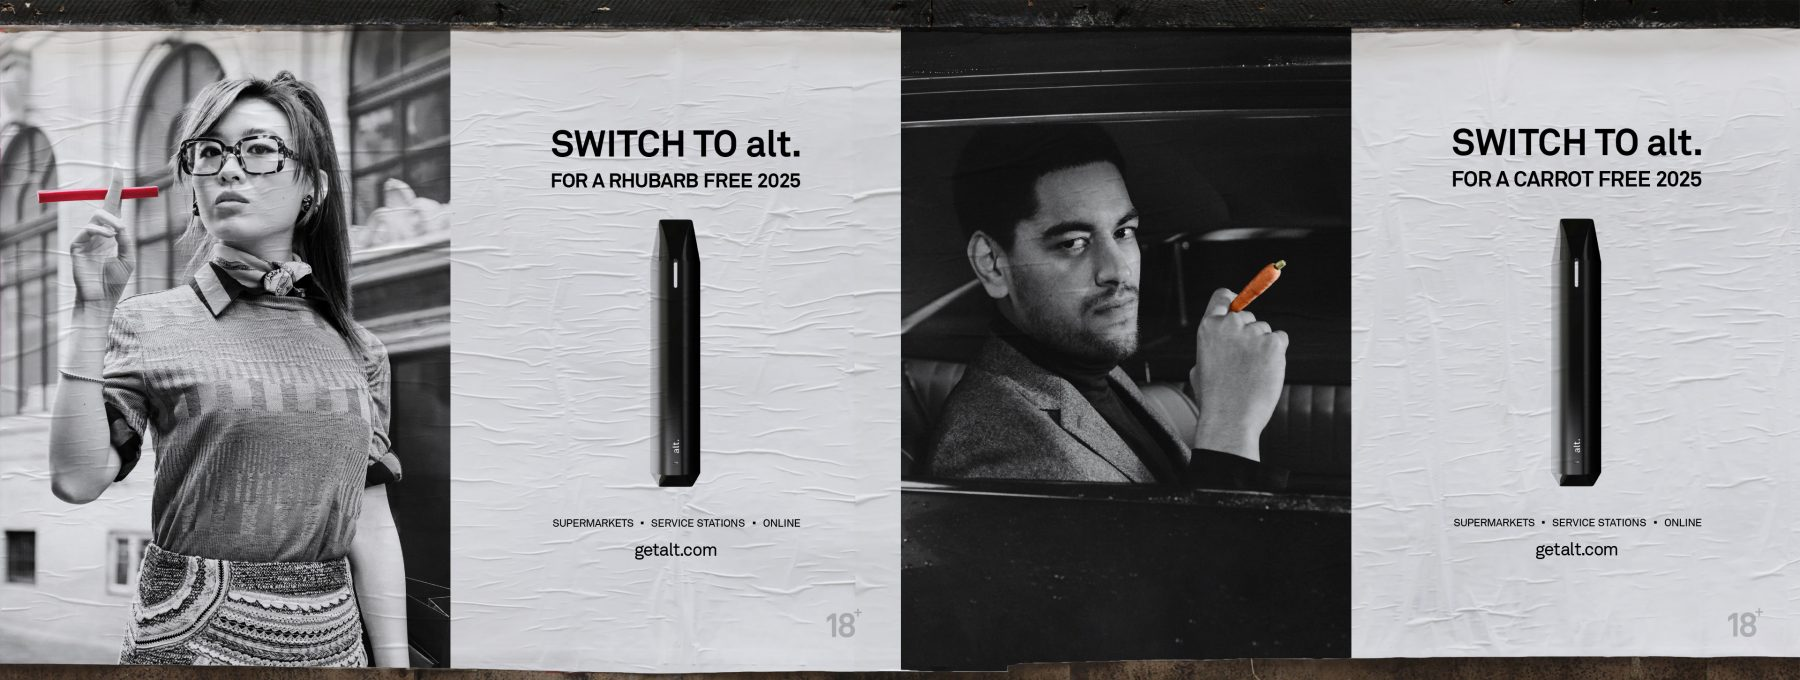 NZ: Vaping Campaign Launch Ahead Of E-Cig Ads Ban